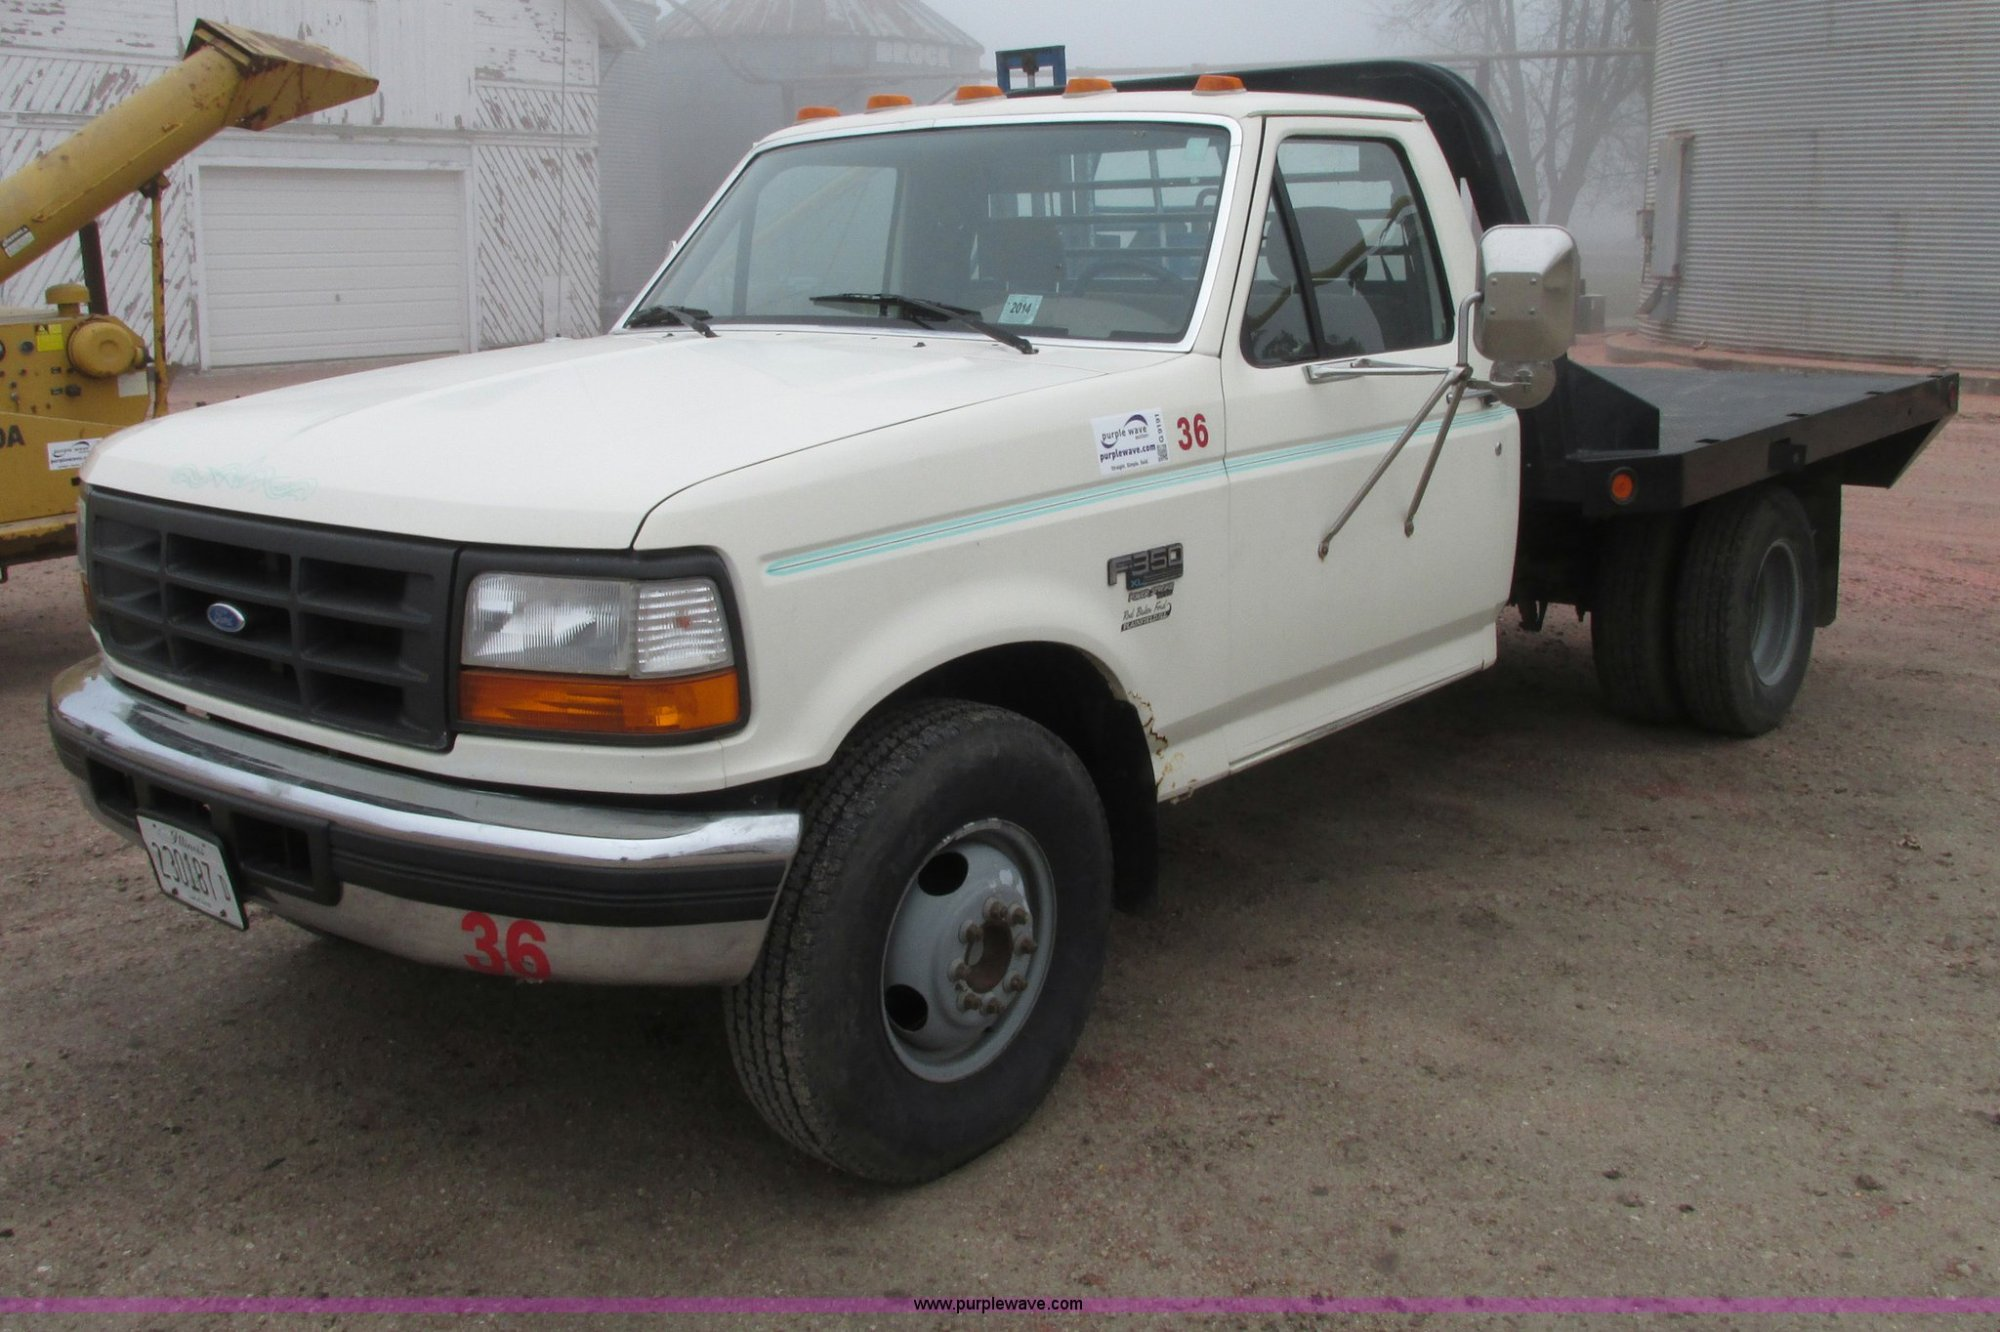 hight resolution of g9191 image for item g9191 1995 ford f350